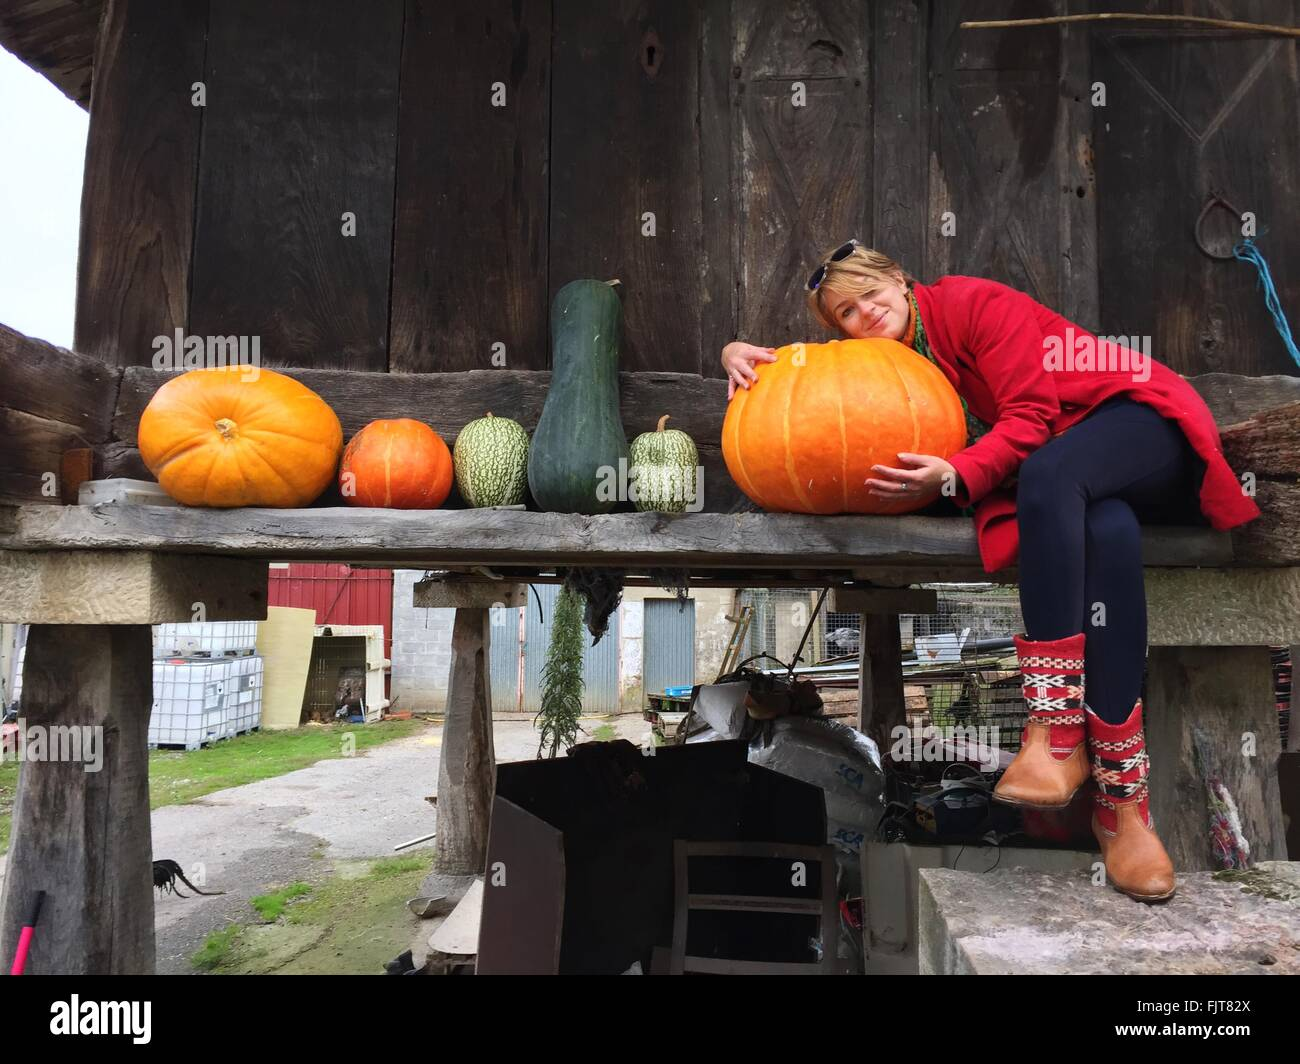 Person Sitting With Vegetables Stock Photo